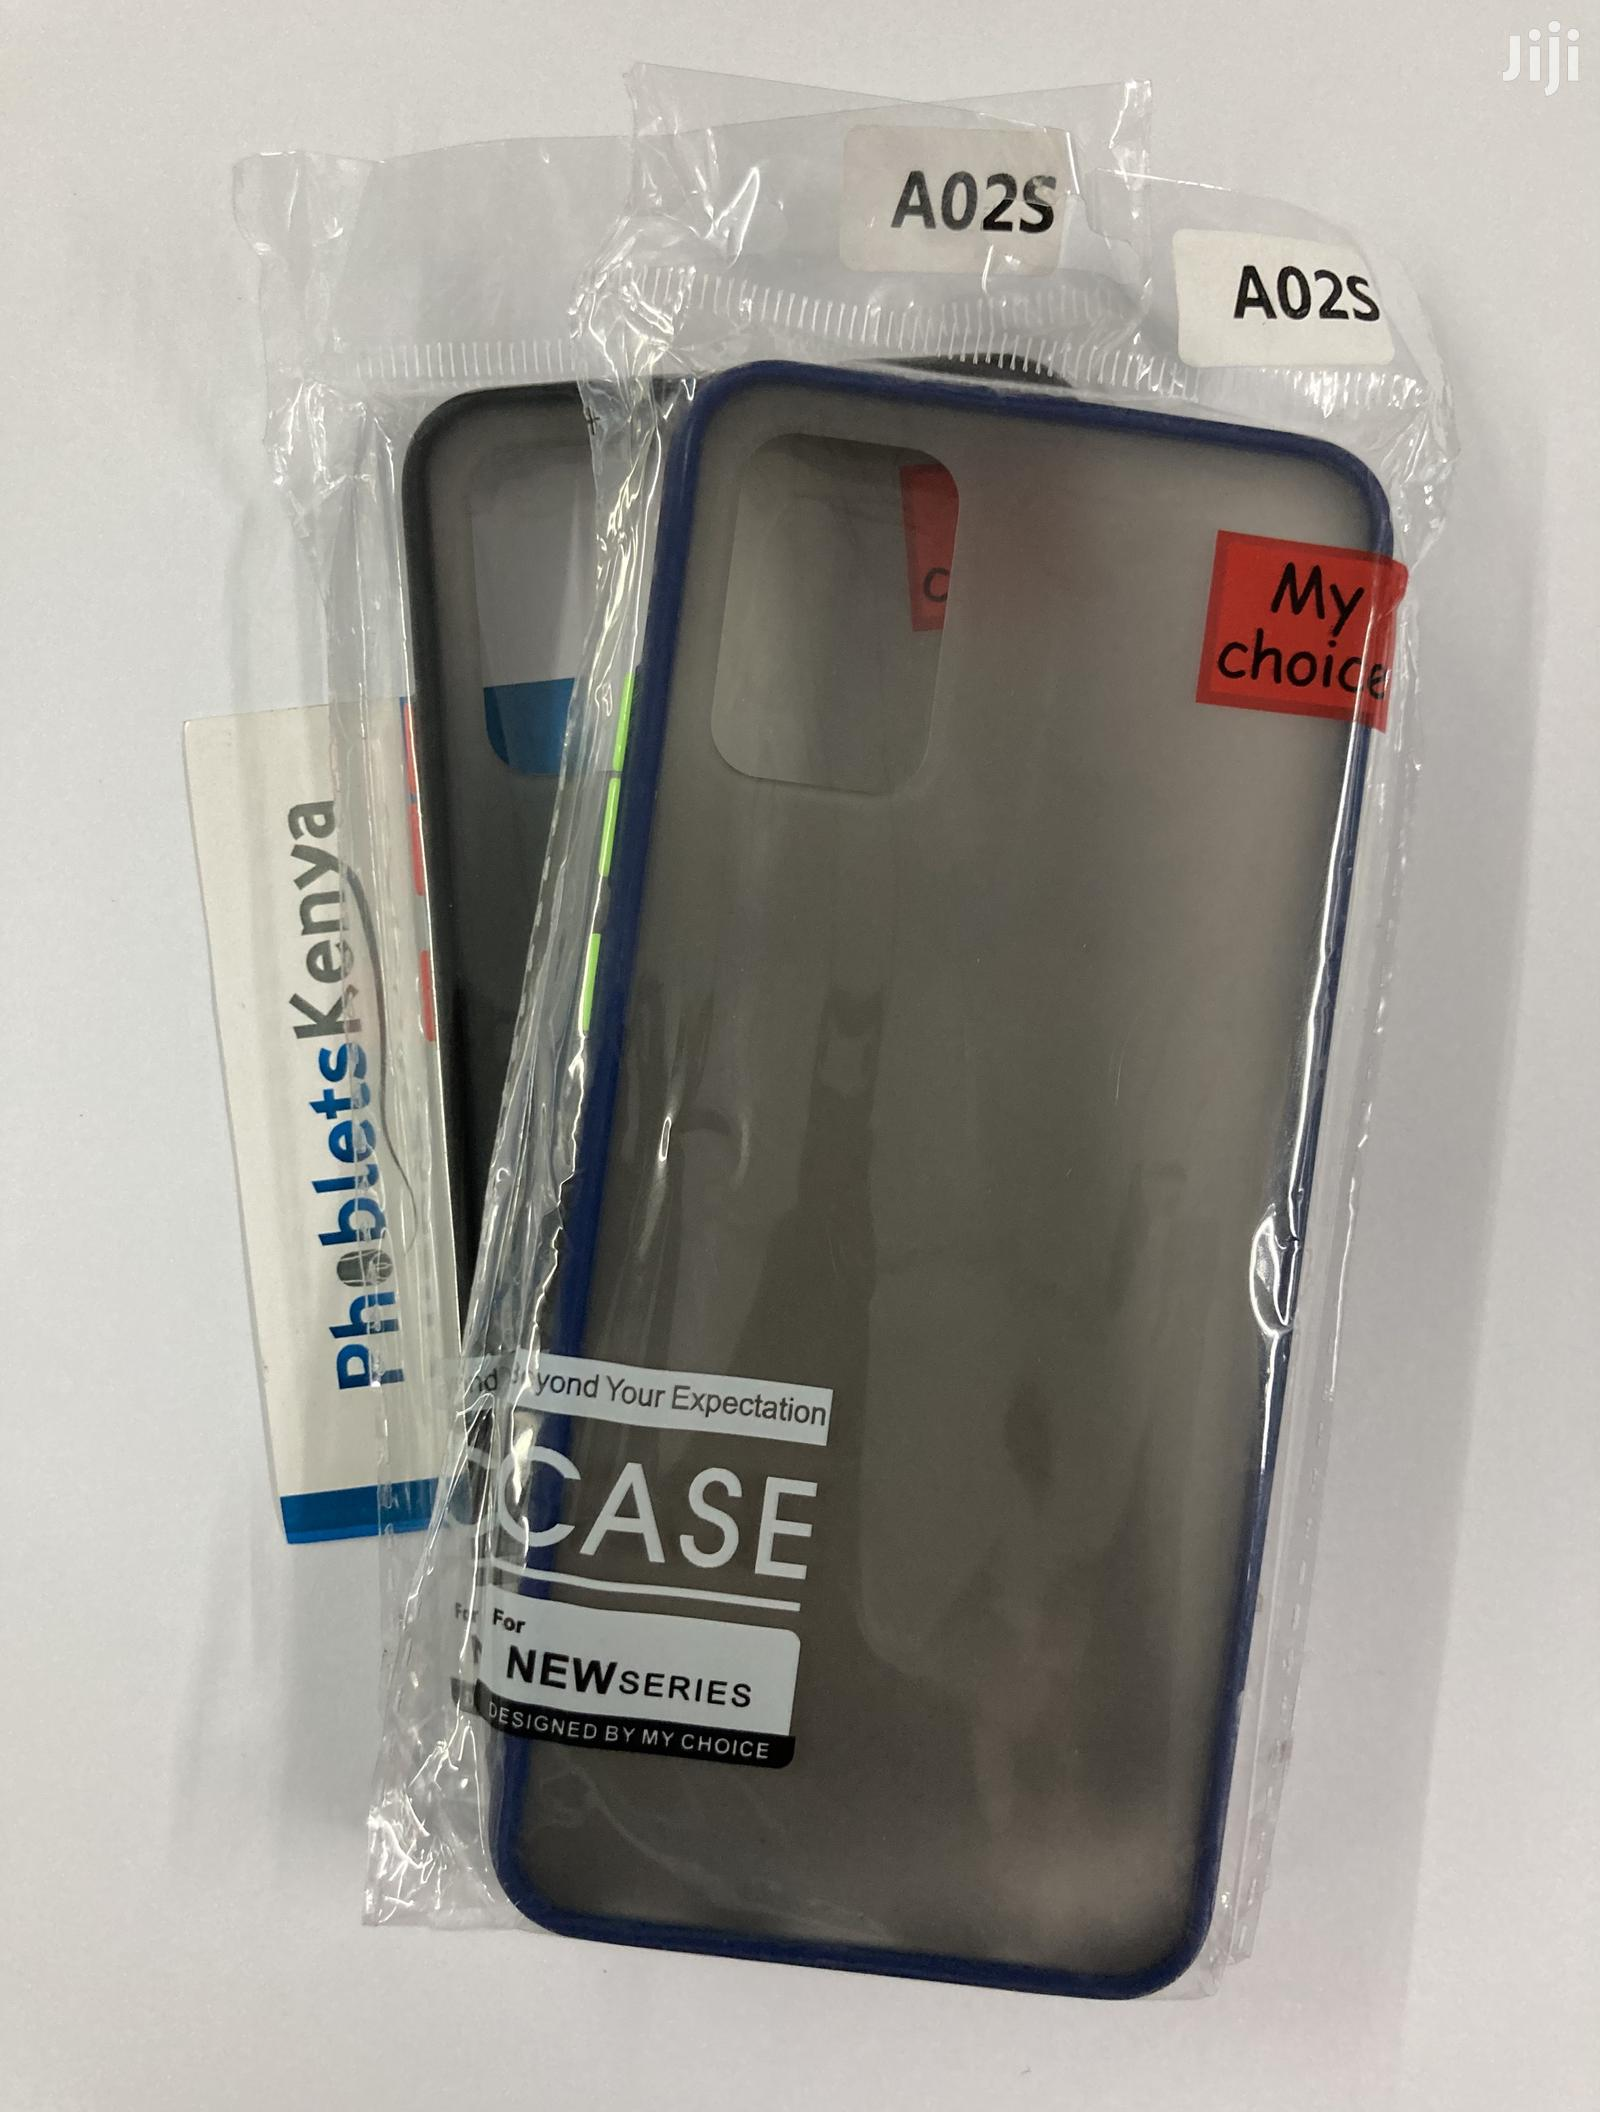 Galaxy A02s Mychoice Back Covers | Accessories for Mobile Phones & Tablets for sale in Nairobi Central, Nairobi, Kenya